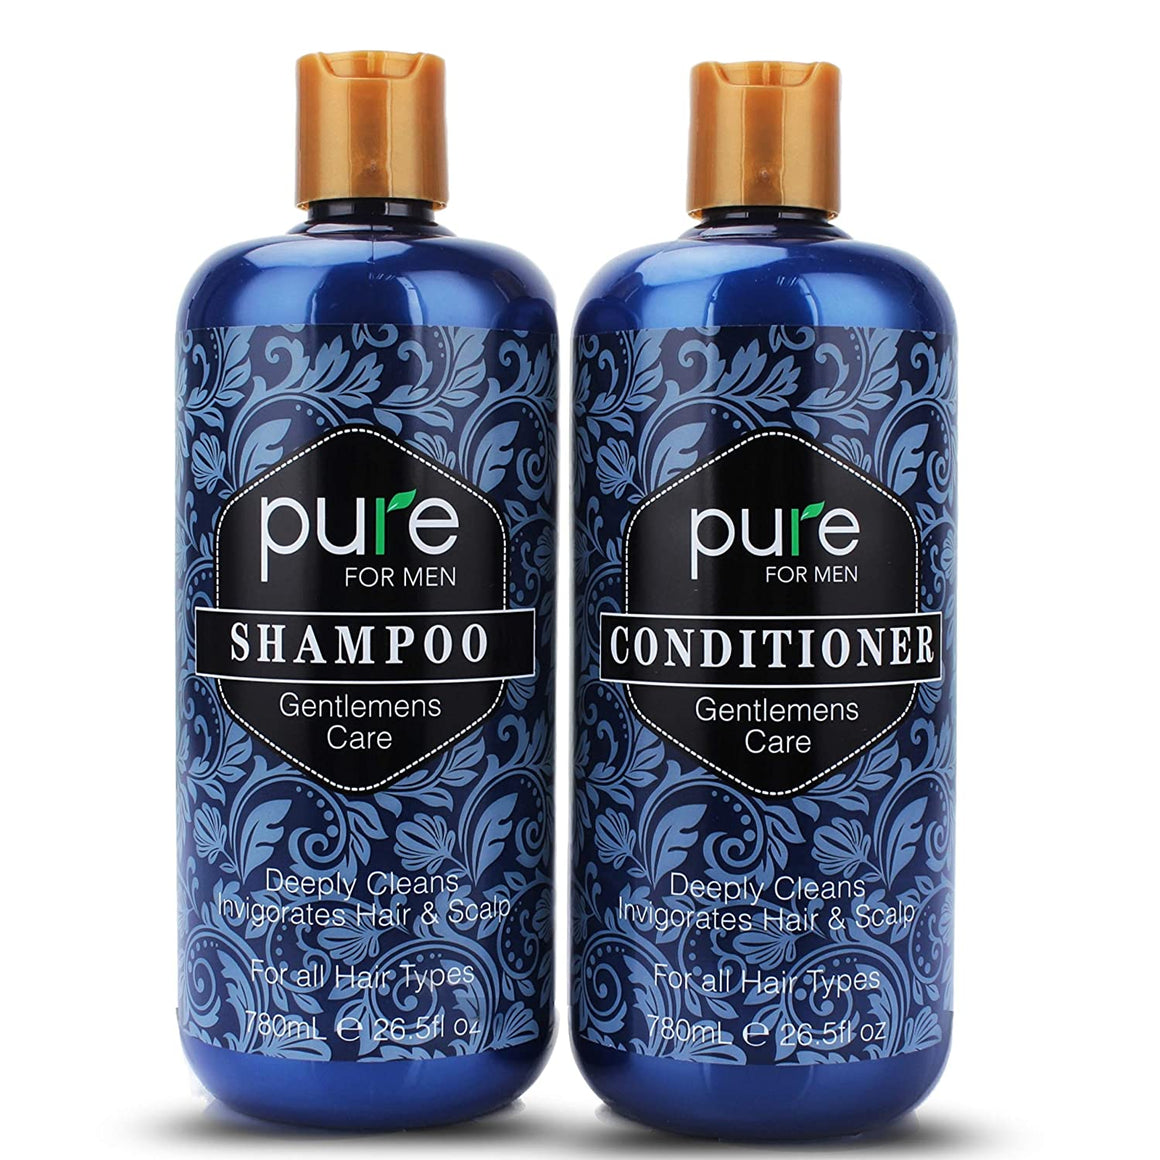 Mens Shampoo and Conditioner Set for Men Daily Hair Care. #1 Pure Shampoo Conditioner for Men for Deep Cleansing, Itchy Scalp Care, Strengthen and Invigorate Hair & Scalp. Paraben & Sulfate Free Shampoo for Men